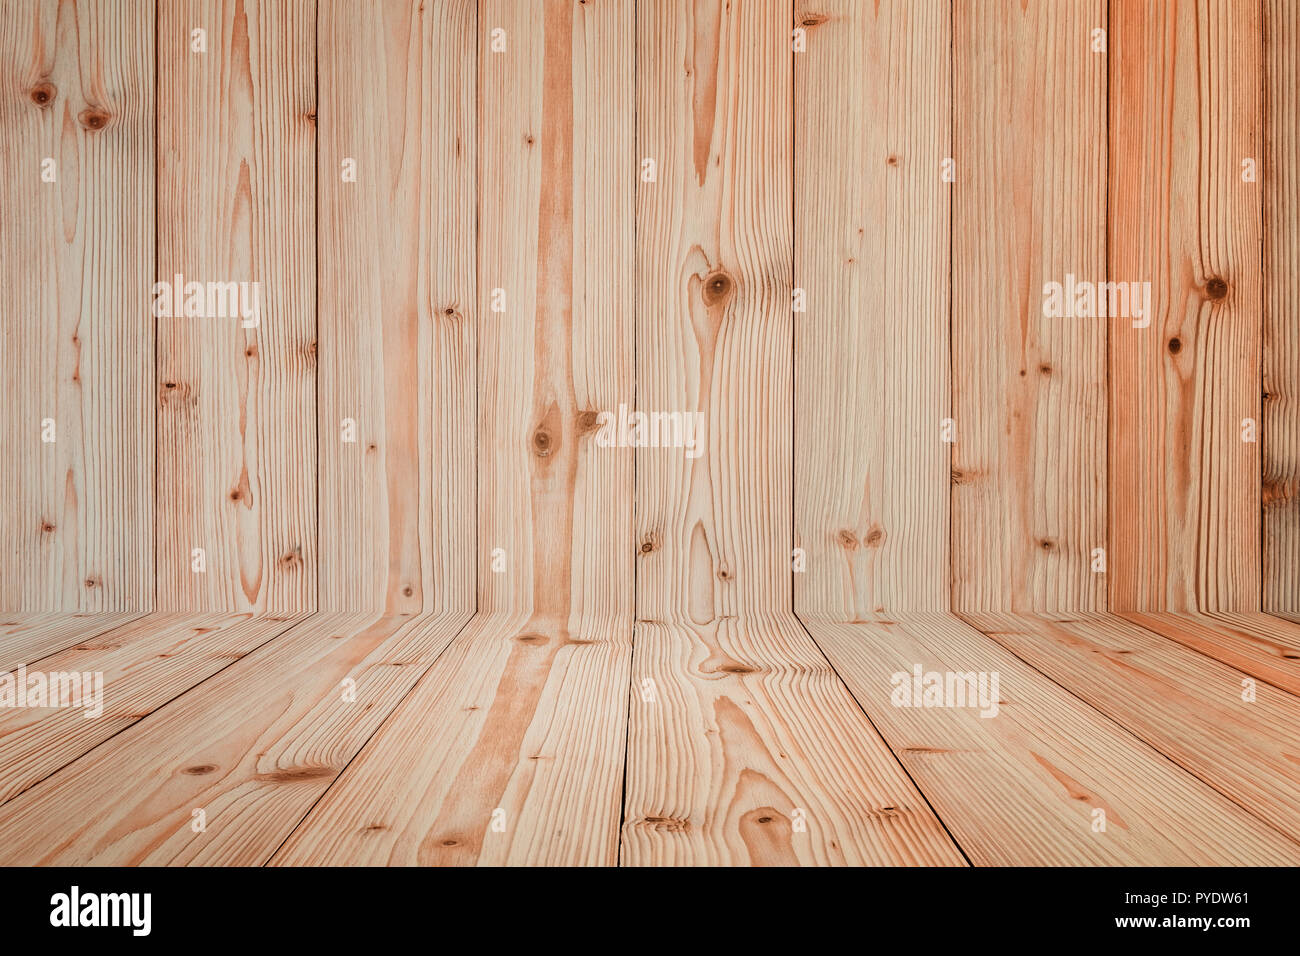 grunge wood background wall and floor wooden texture surface